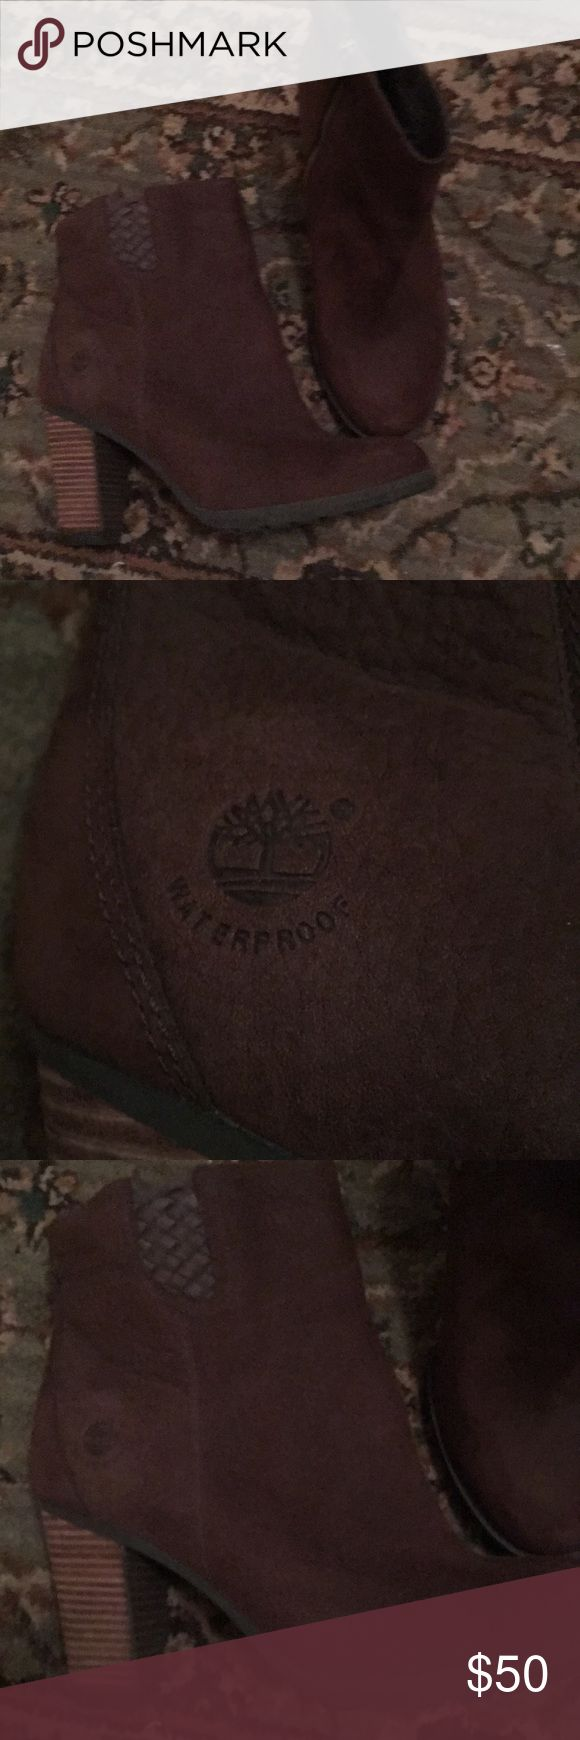 Timberland waterproof bootie Timberland waterproof bootie size 9 dark brown, never worn Timberland Shoes Winter & Rain Boots